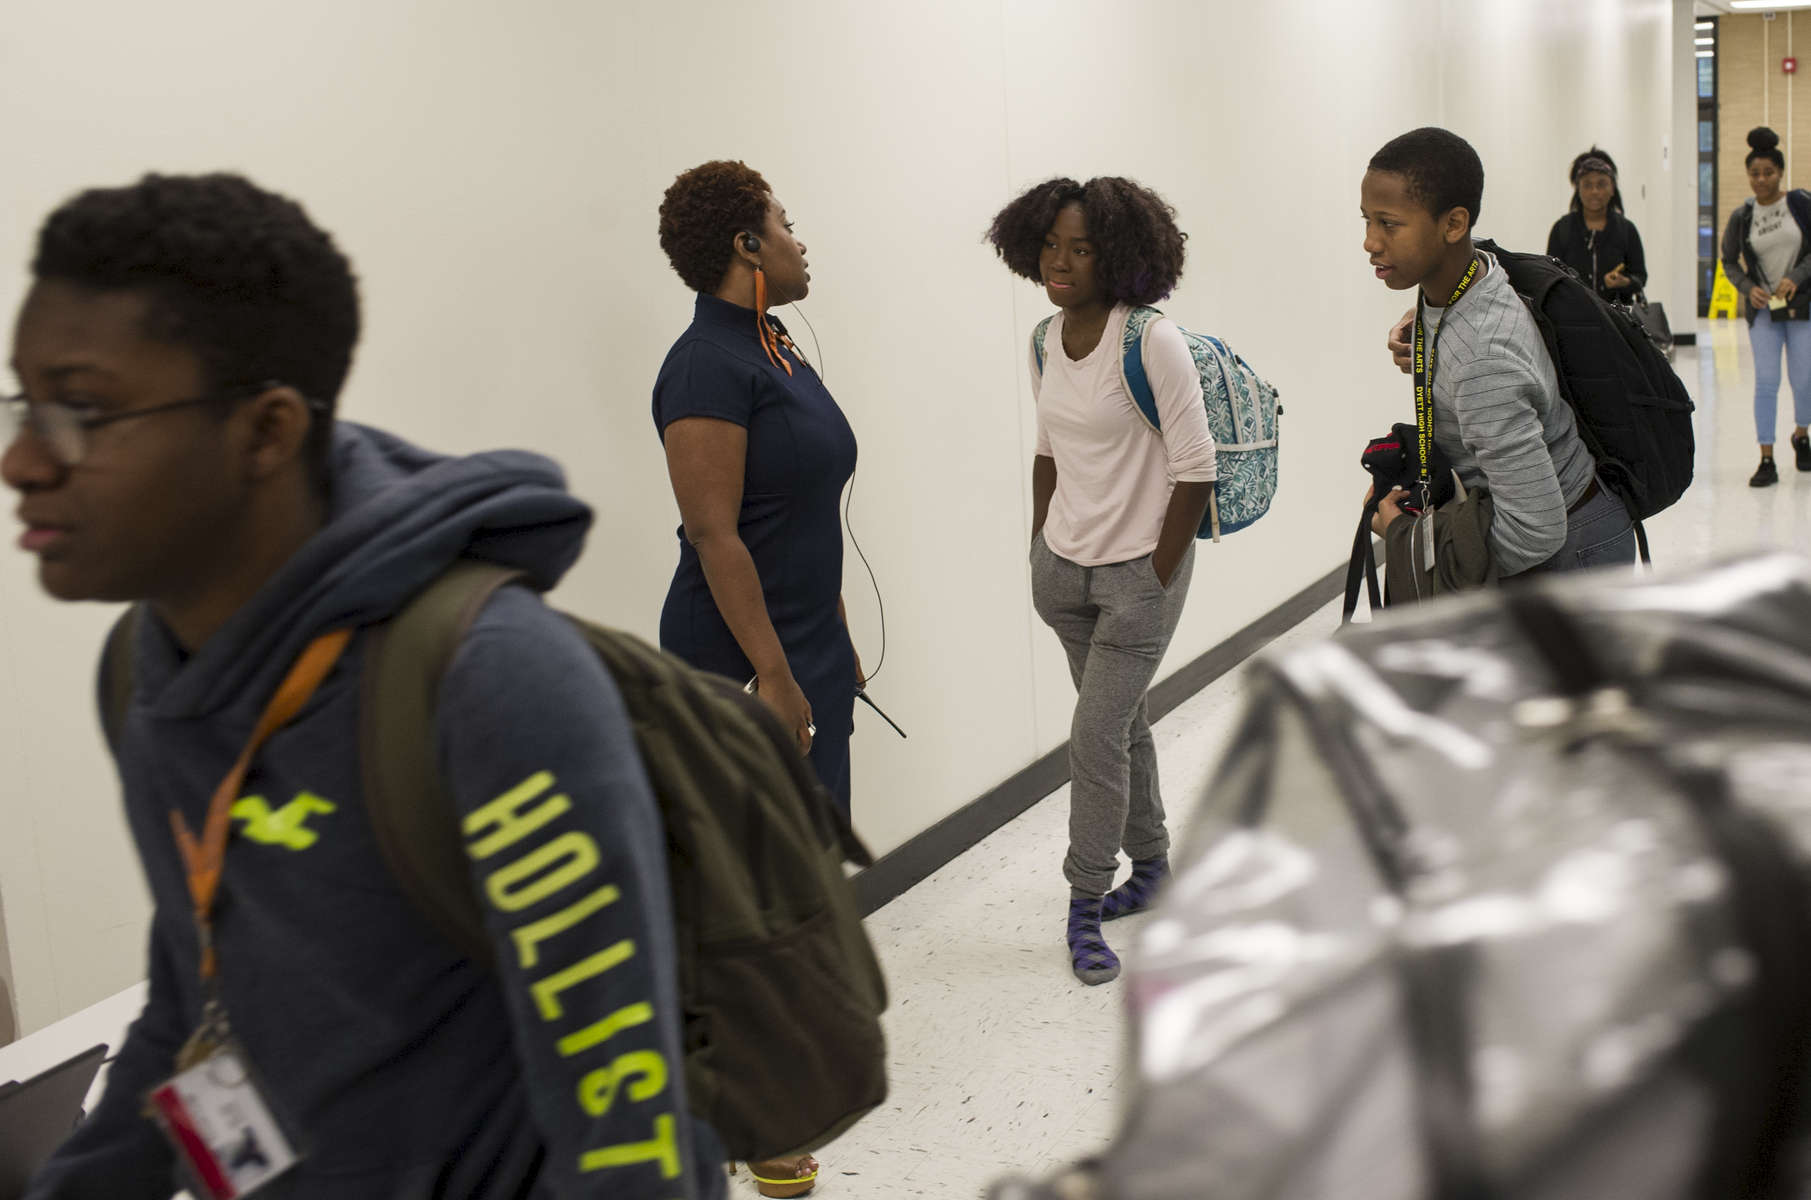 Principal Beulah McLoyd greets students in the hallway during a passing period at Dyett High School for the Arts, October 26, 2016.